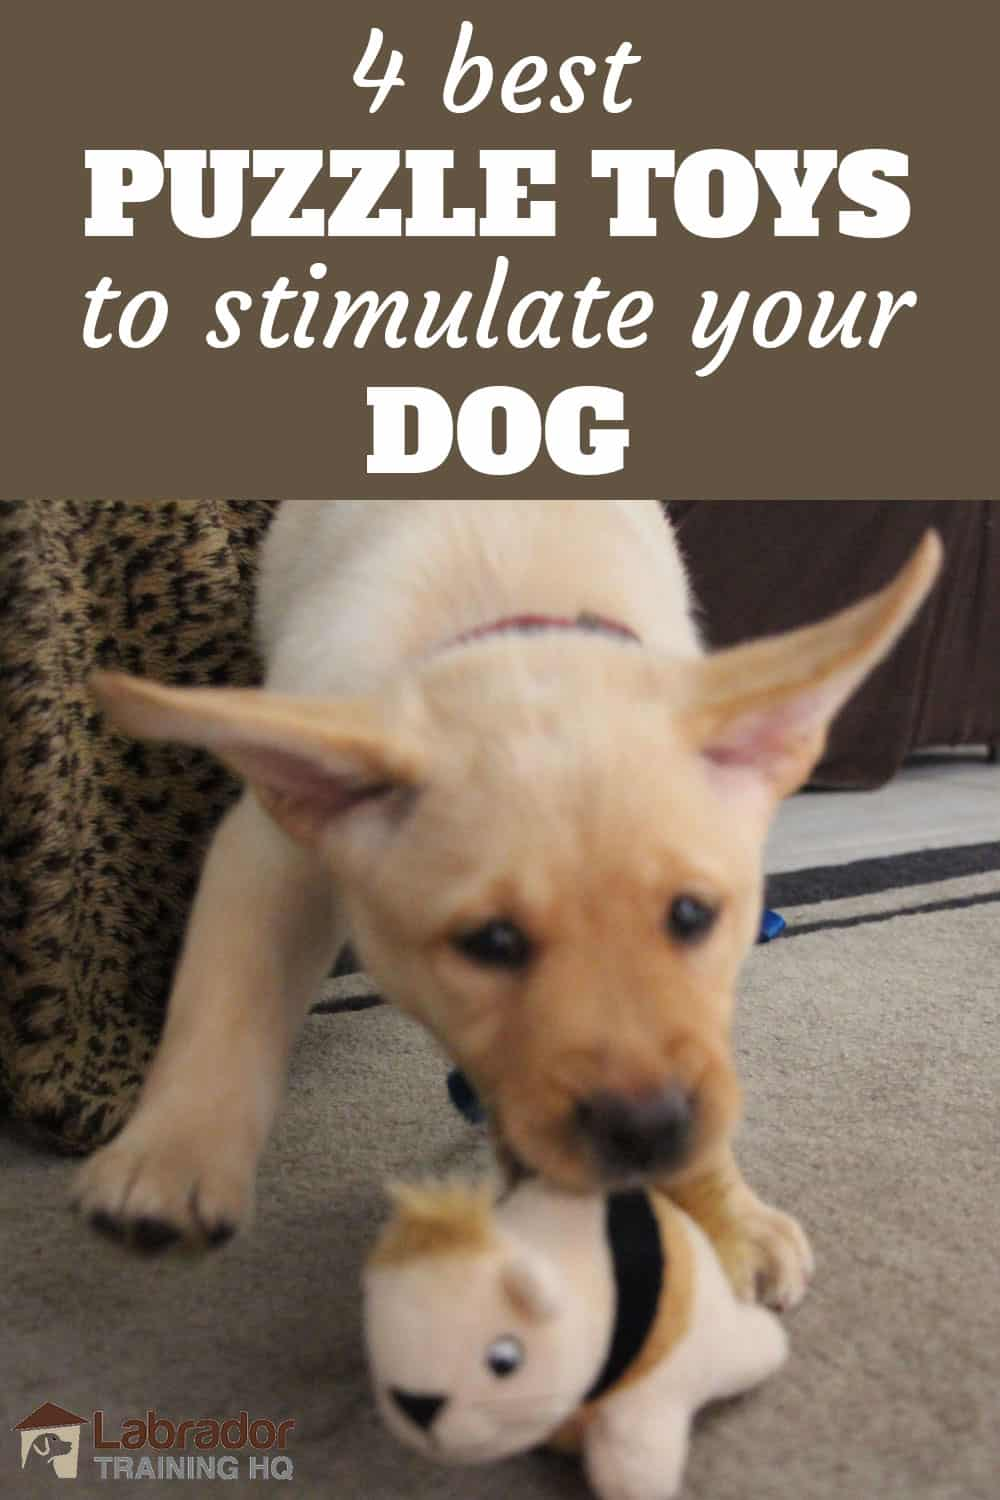 4 Best Puzzle Toys To Stimulate Your Dog - Yellow Lab puppy playing with plush stuffed squirrel toy